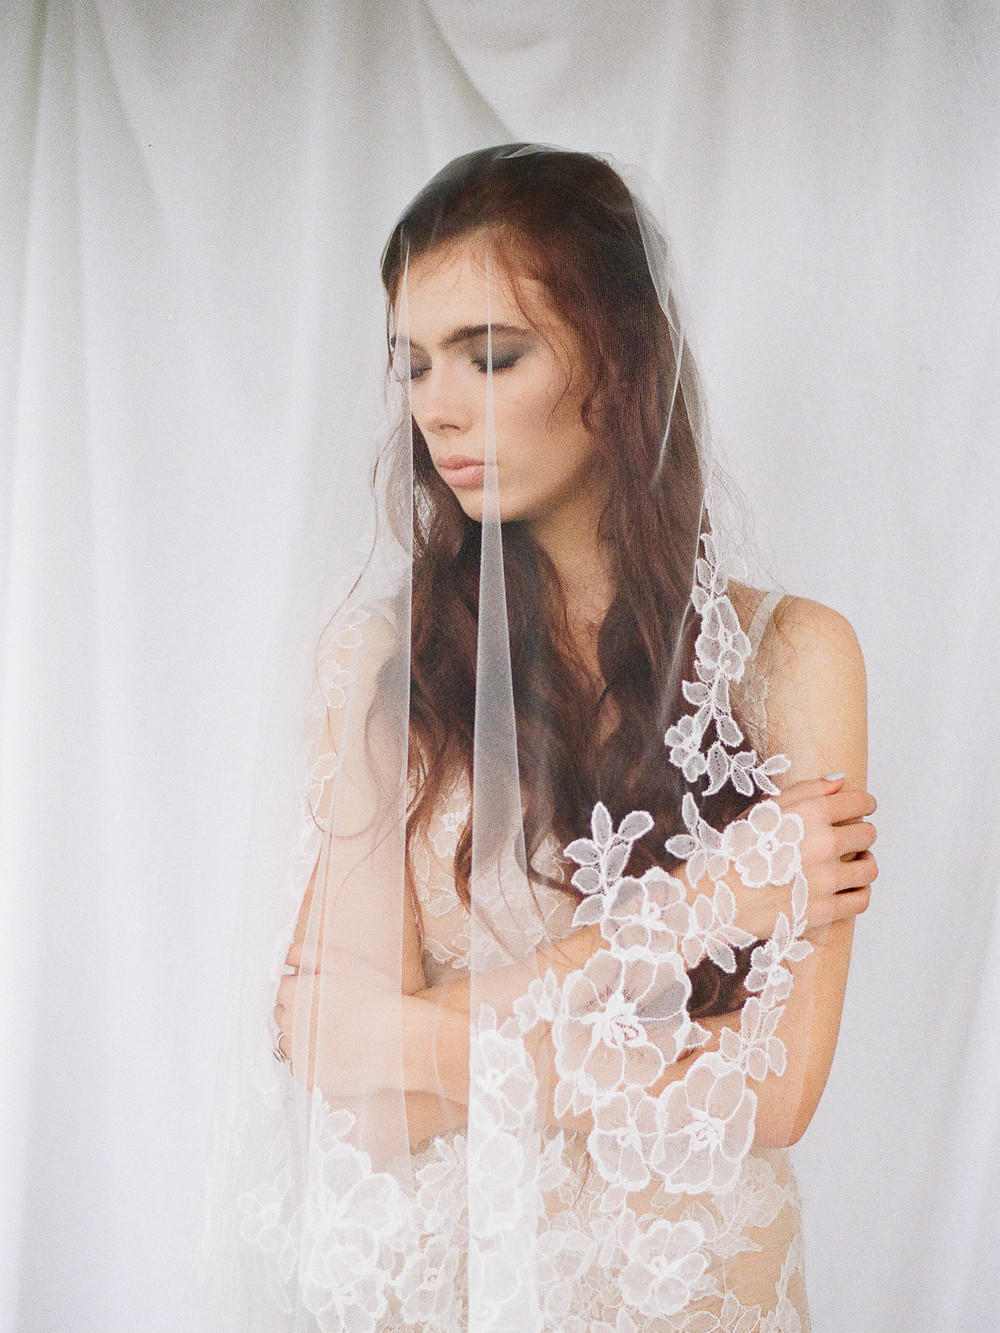 wedding photographers in allentown pa